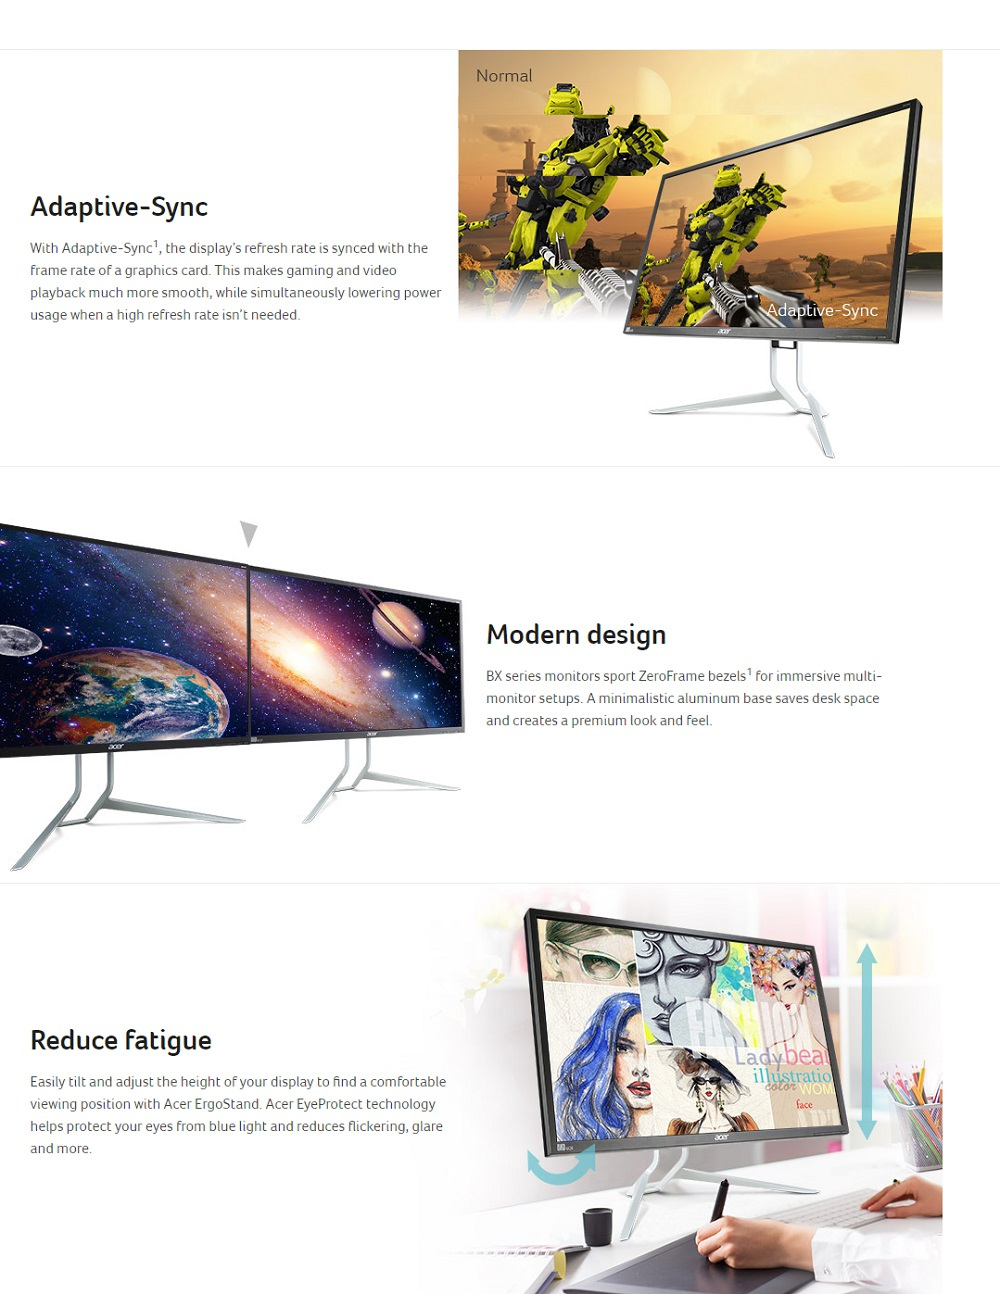 Acer BX340CK Monitor [34 inch] Ultra-wide QHD [Demo Set]